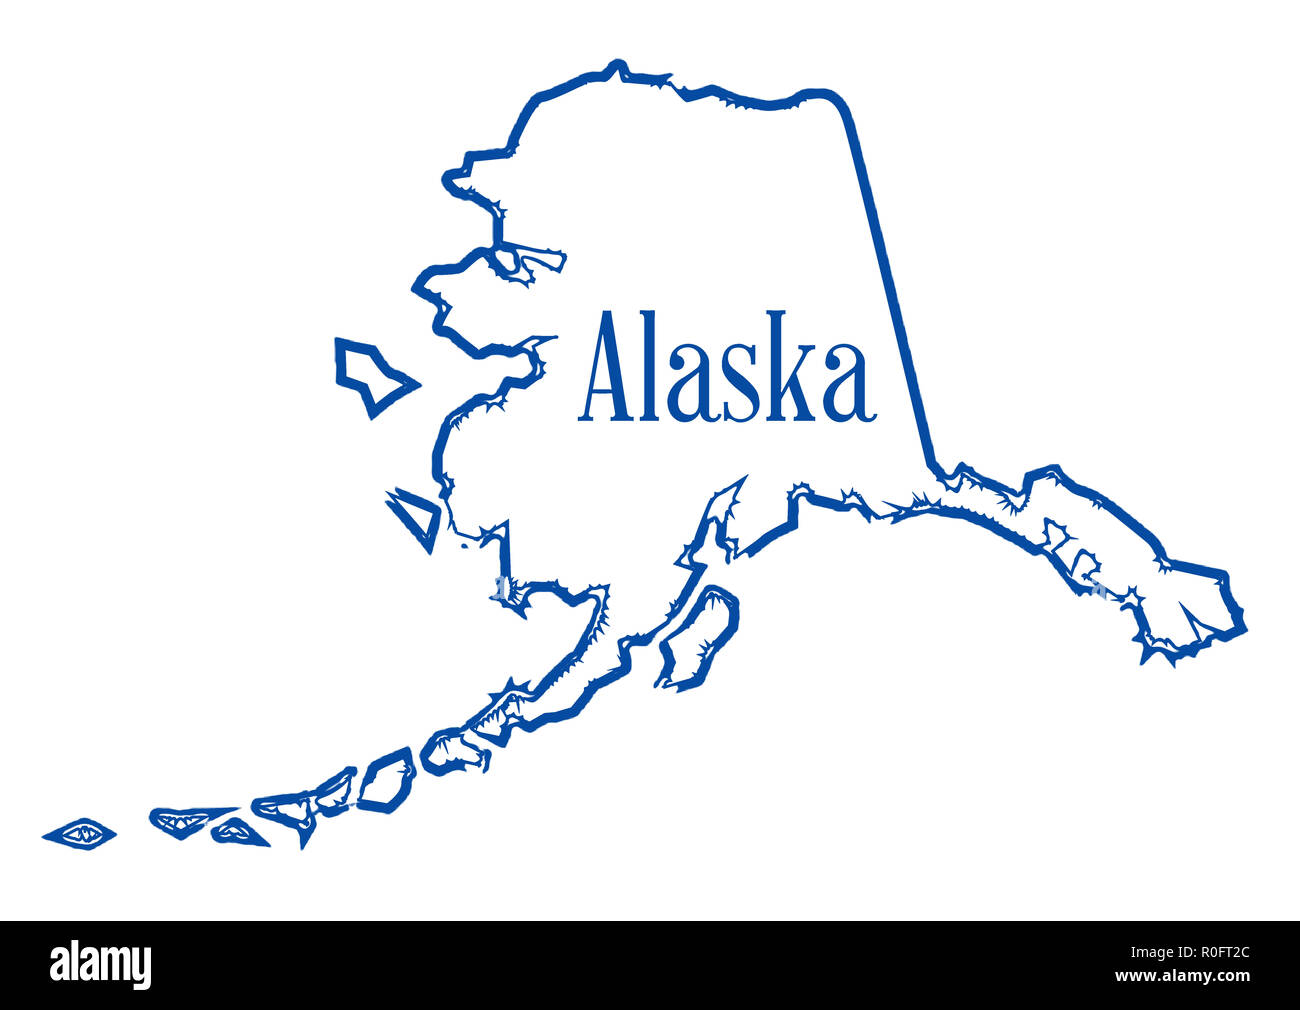 Outline Map Of The State Of Alaska Isolated Stock Photo Alamy